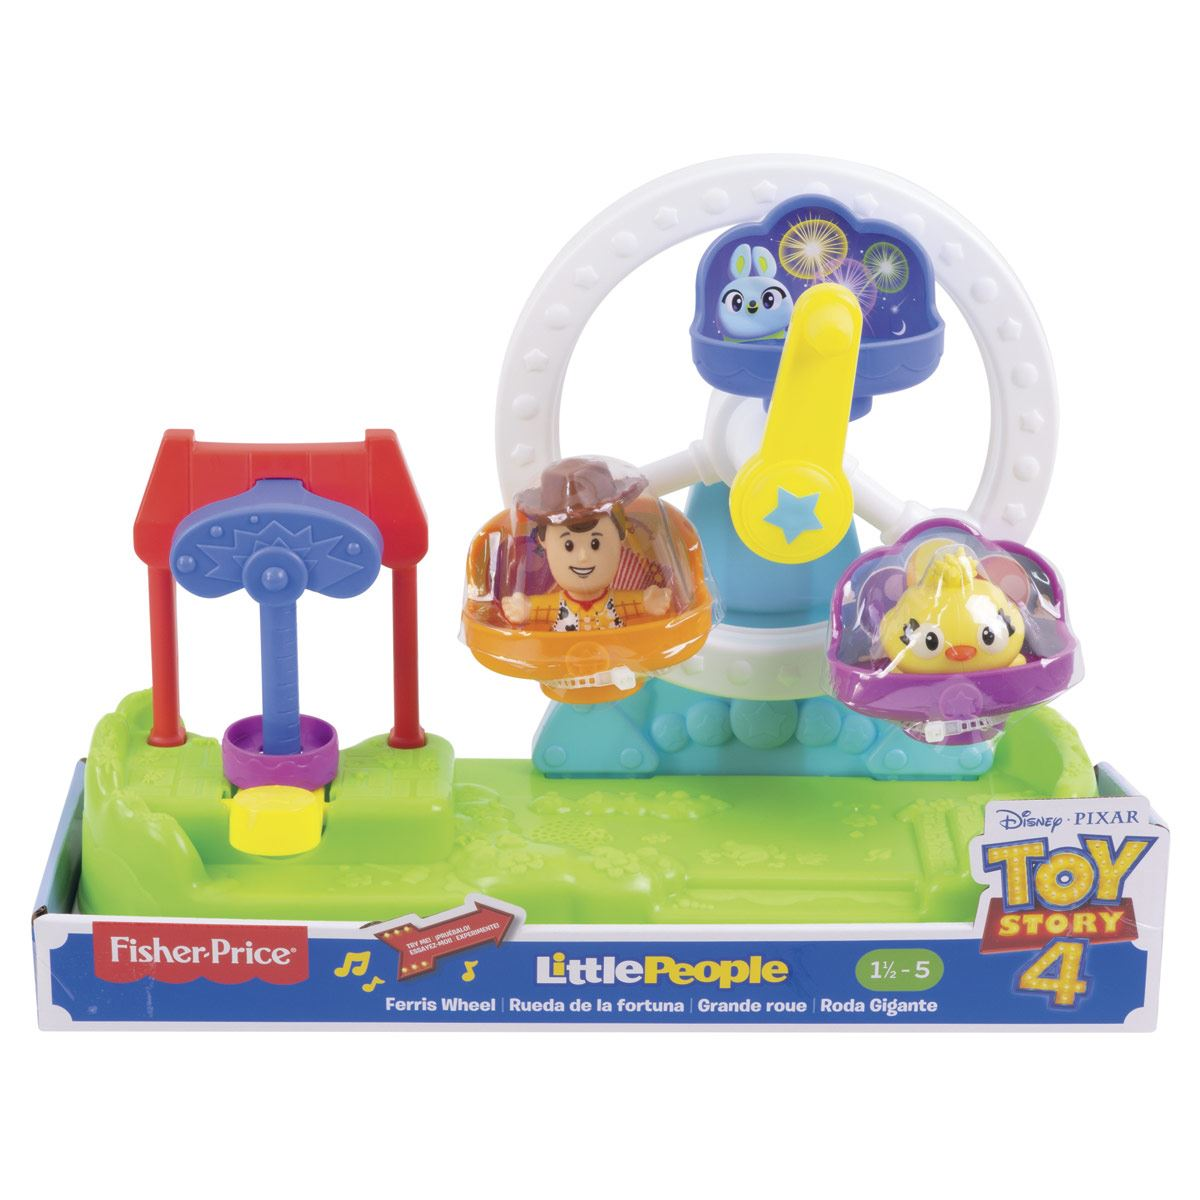 Fisher Price Little People Toy Story 4 Noria